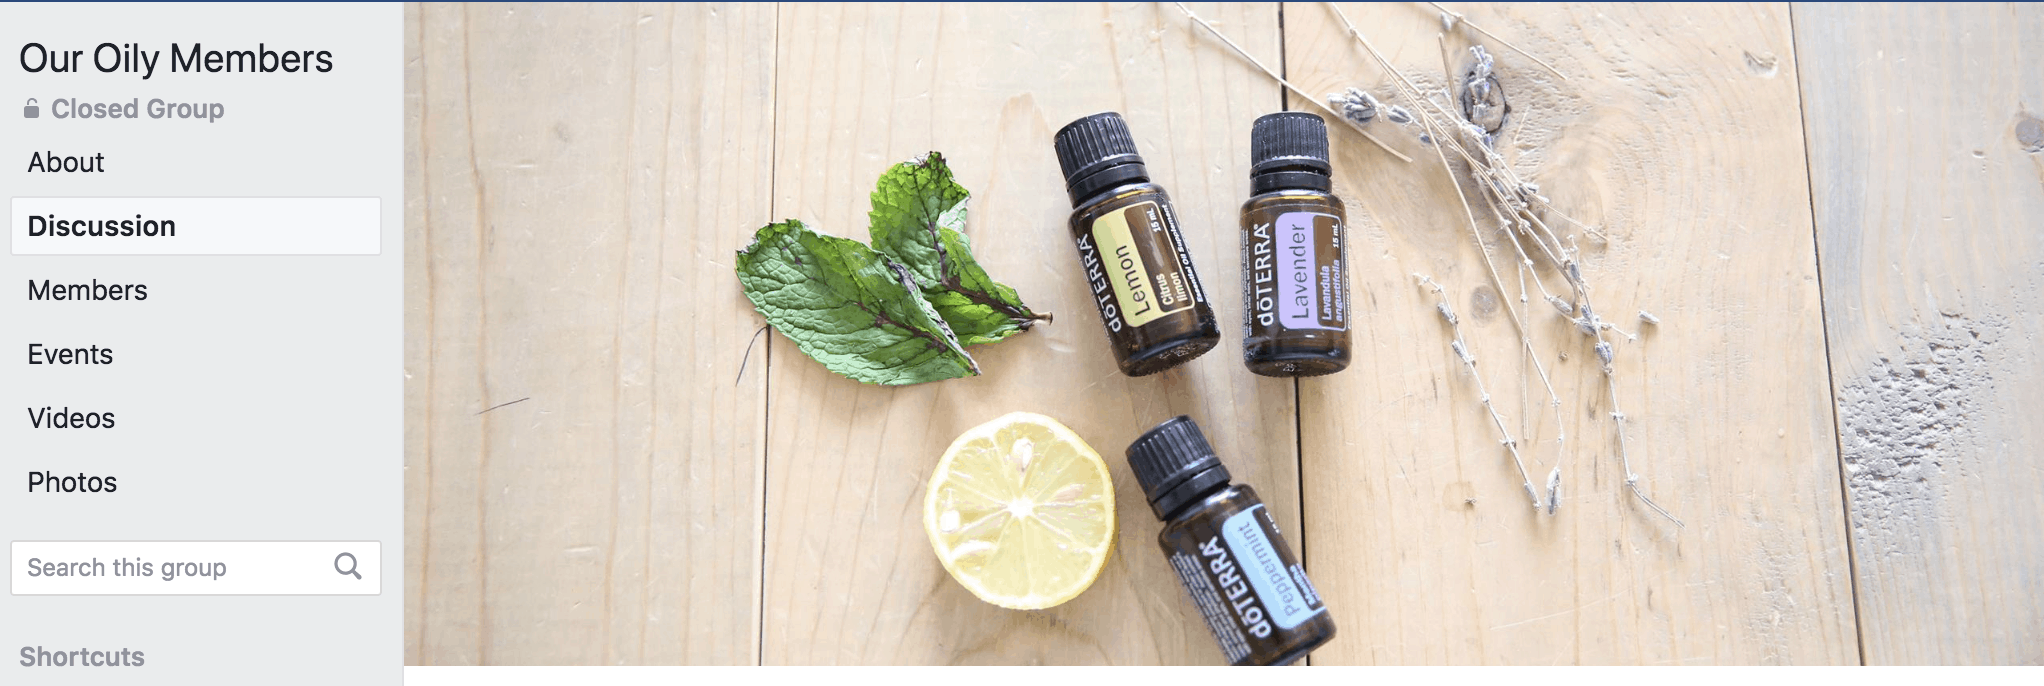 our loily memebrs essential oil members group